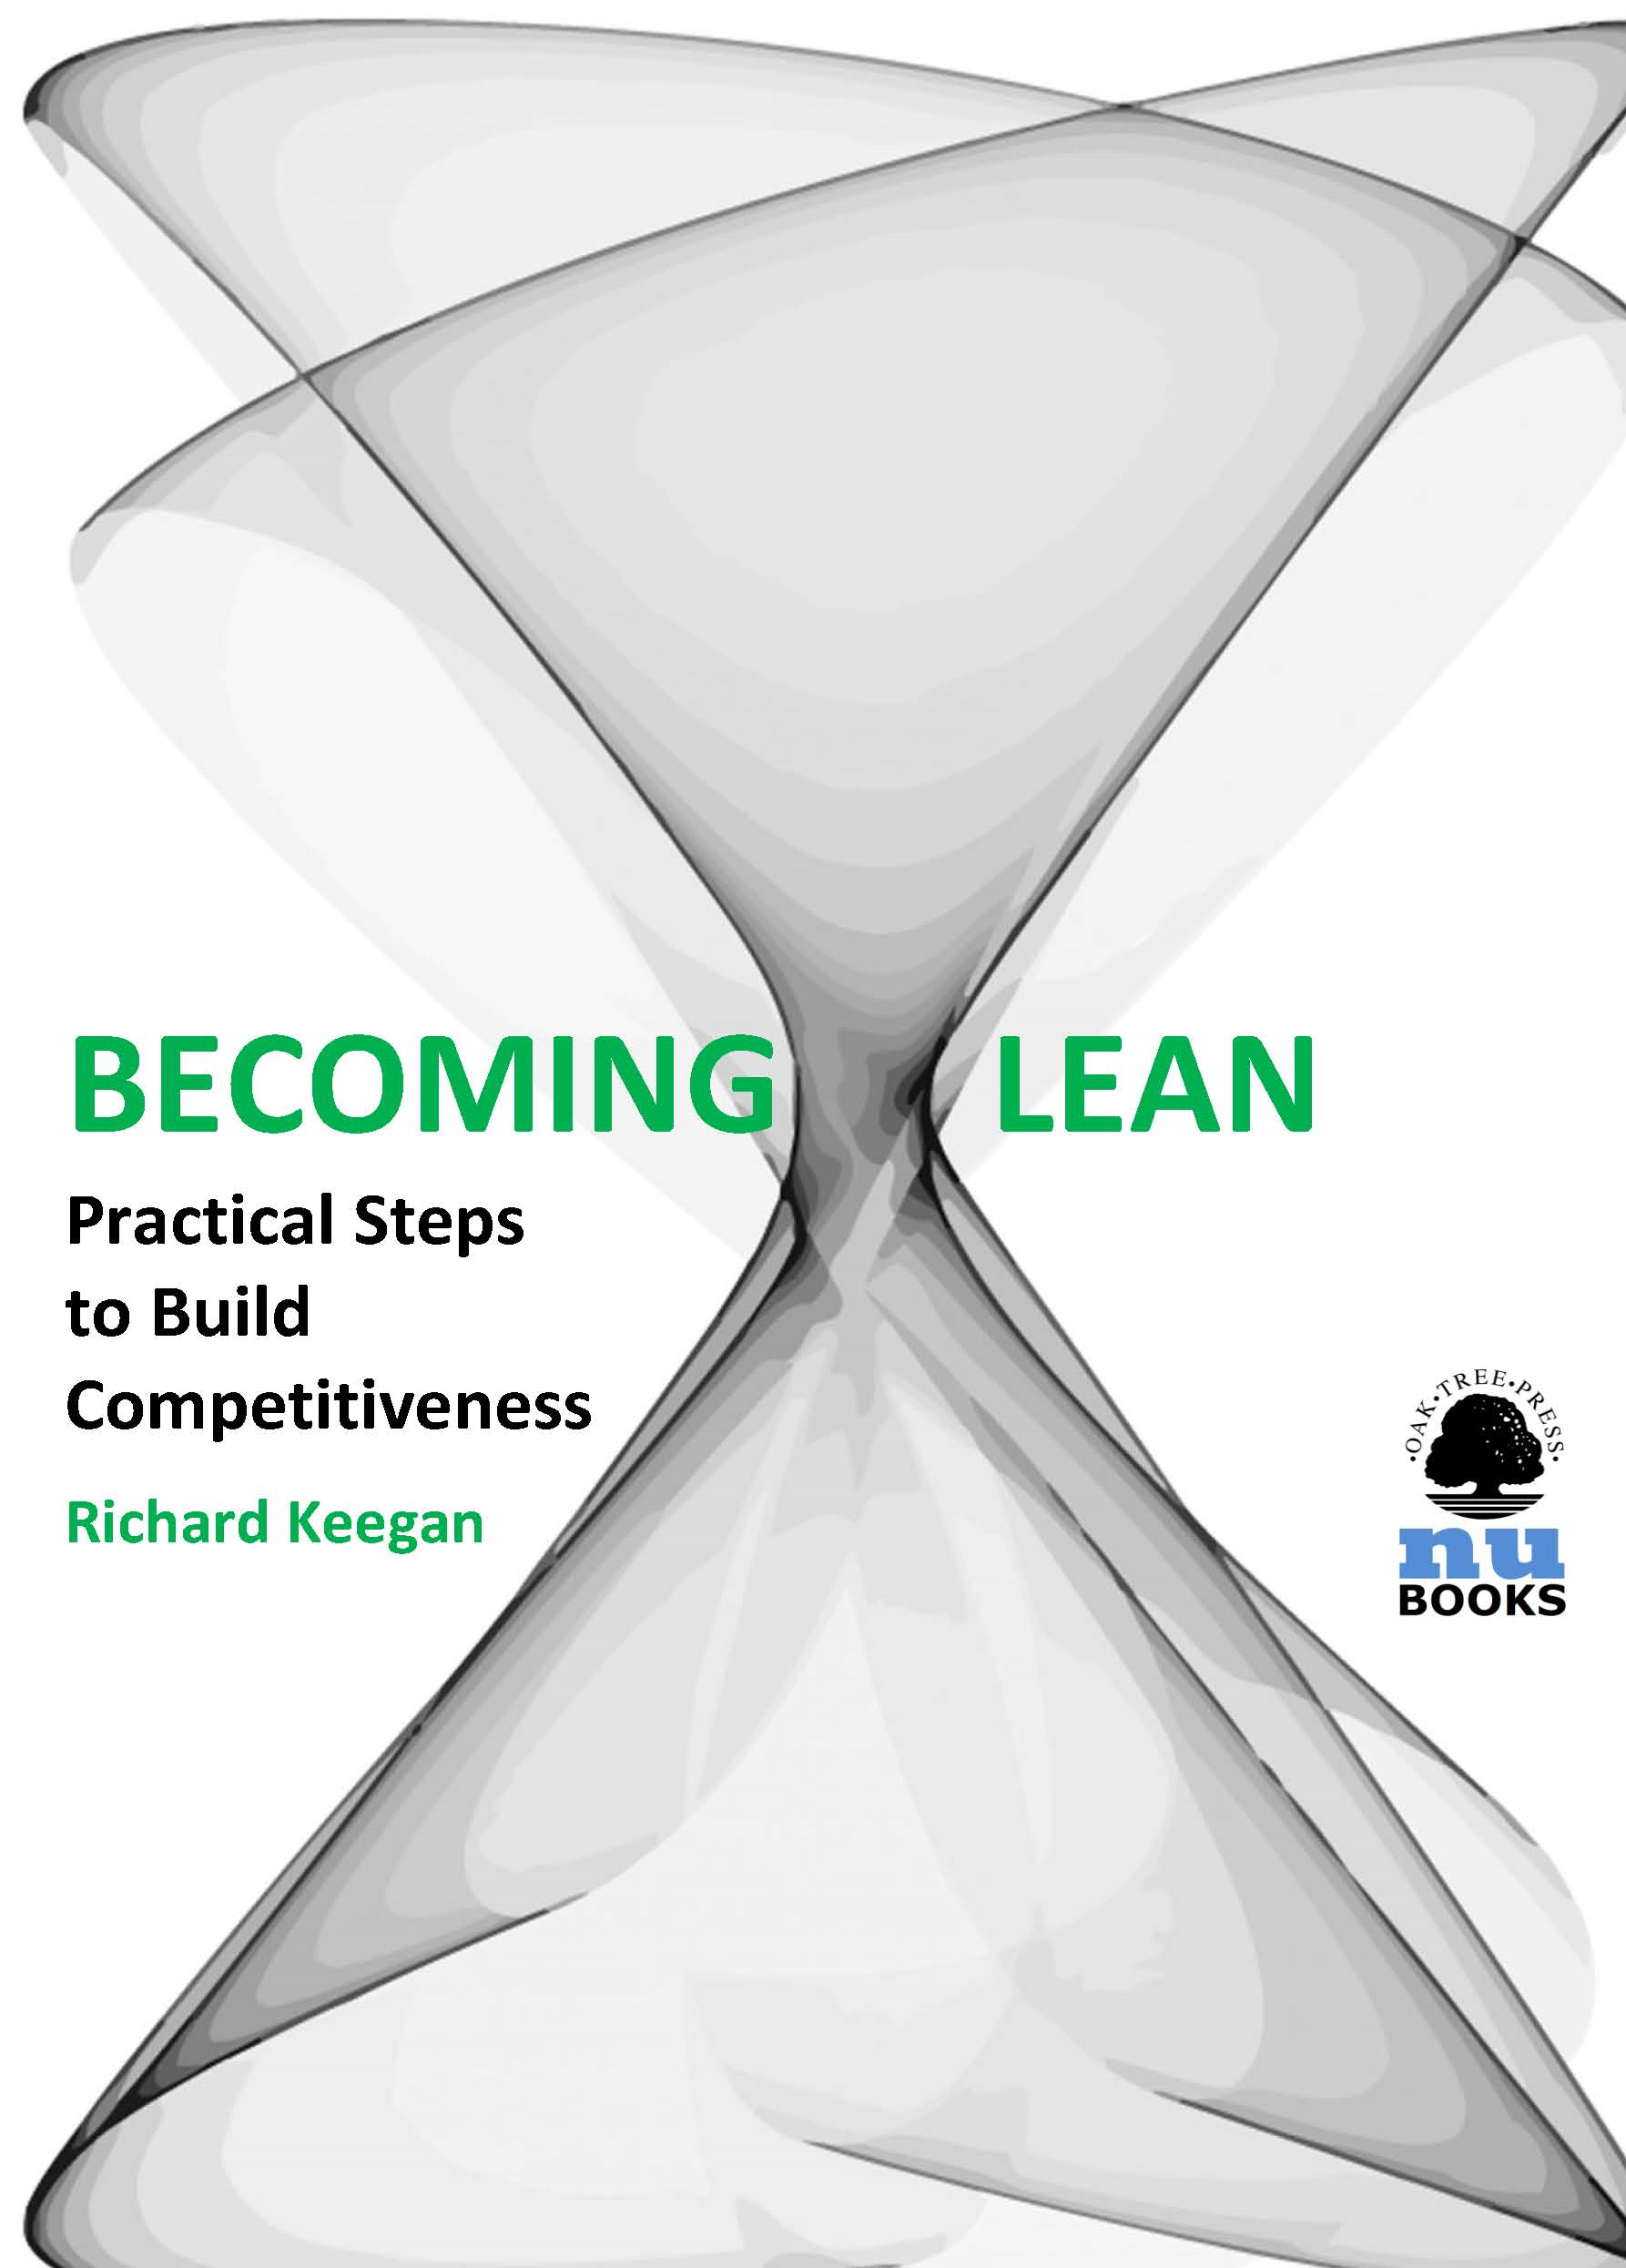 Becoming Lean: Practical Steps to Build Competitiveness